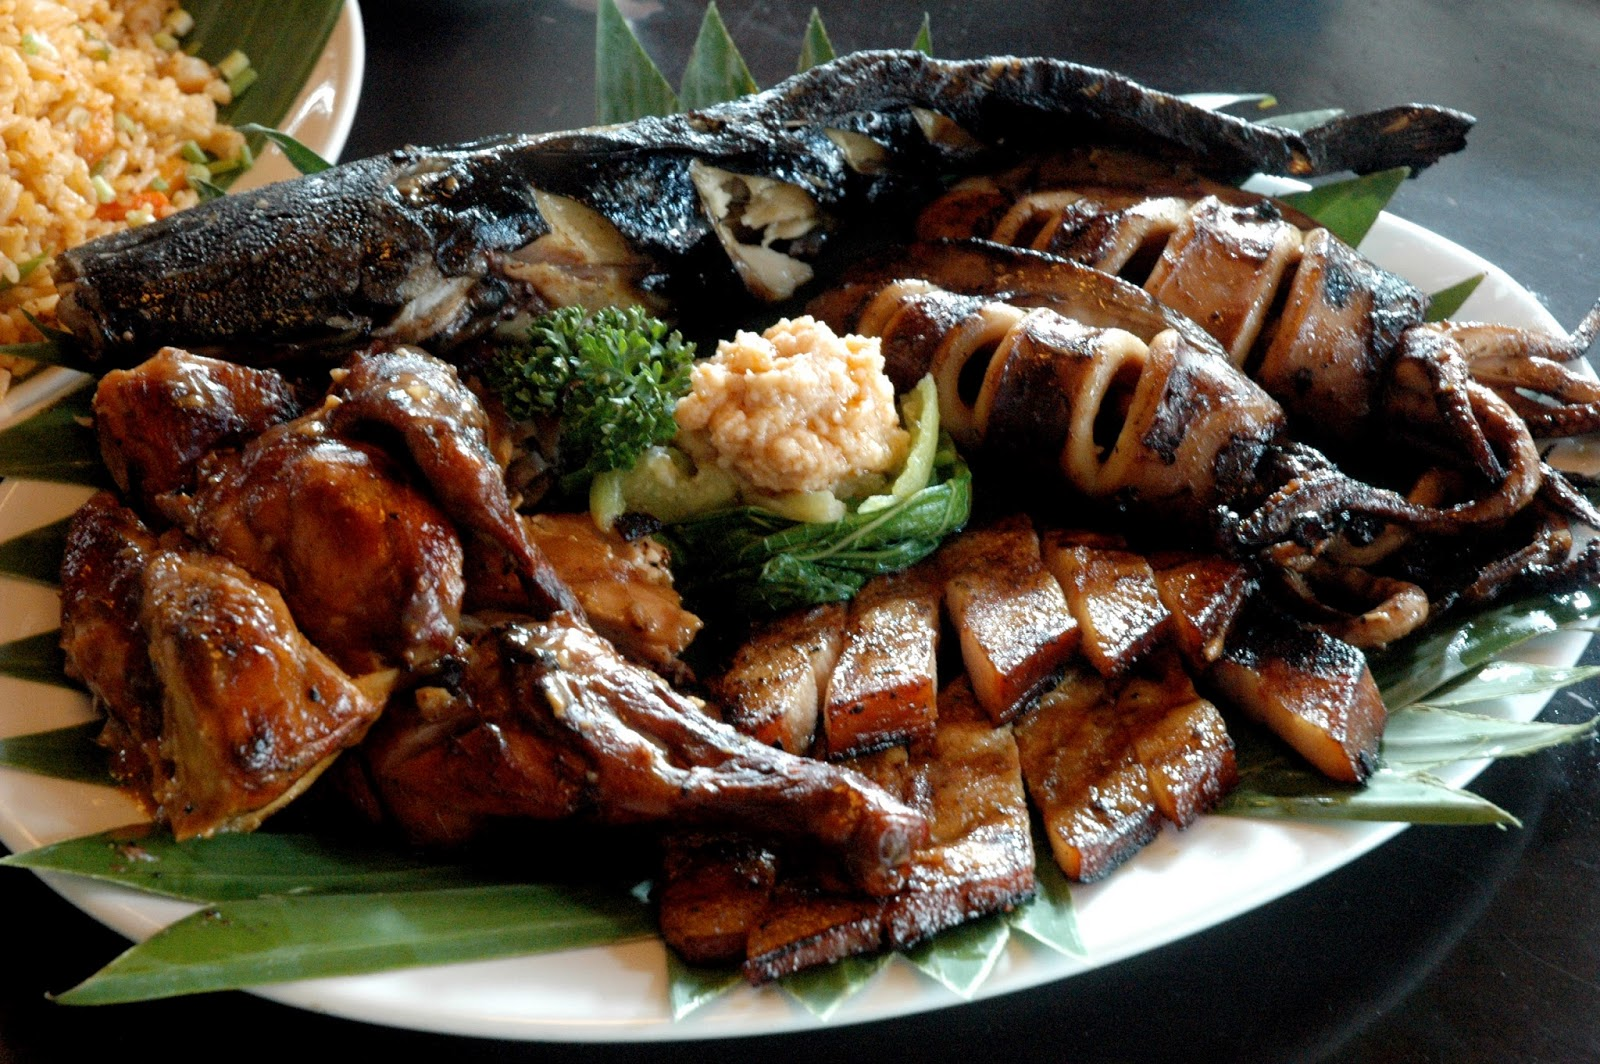 Dude for food asya filipino asian restaurant a cool mix for Asian food cuisine